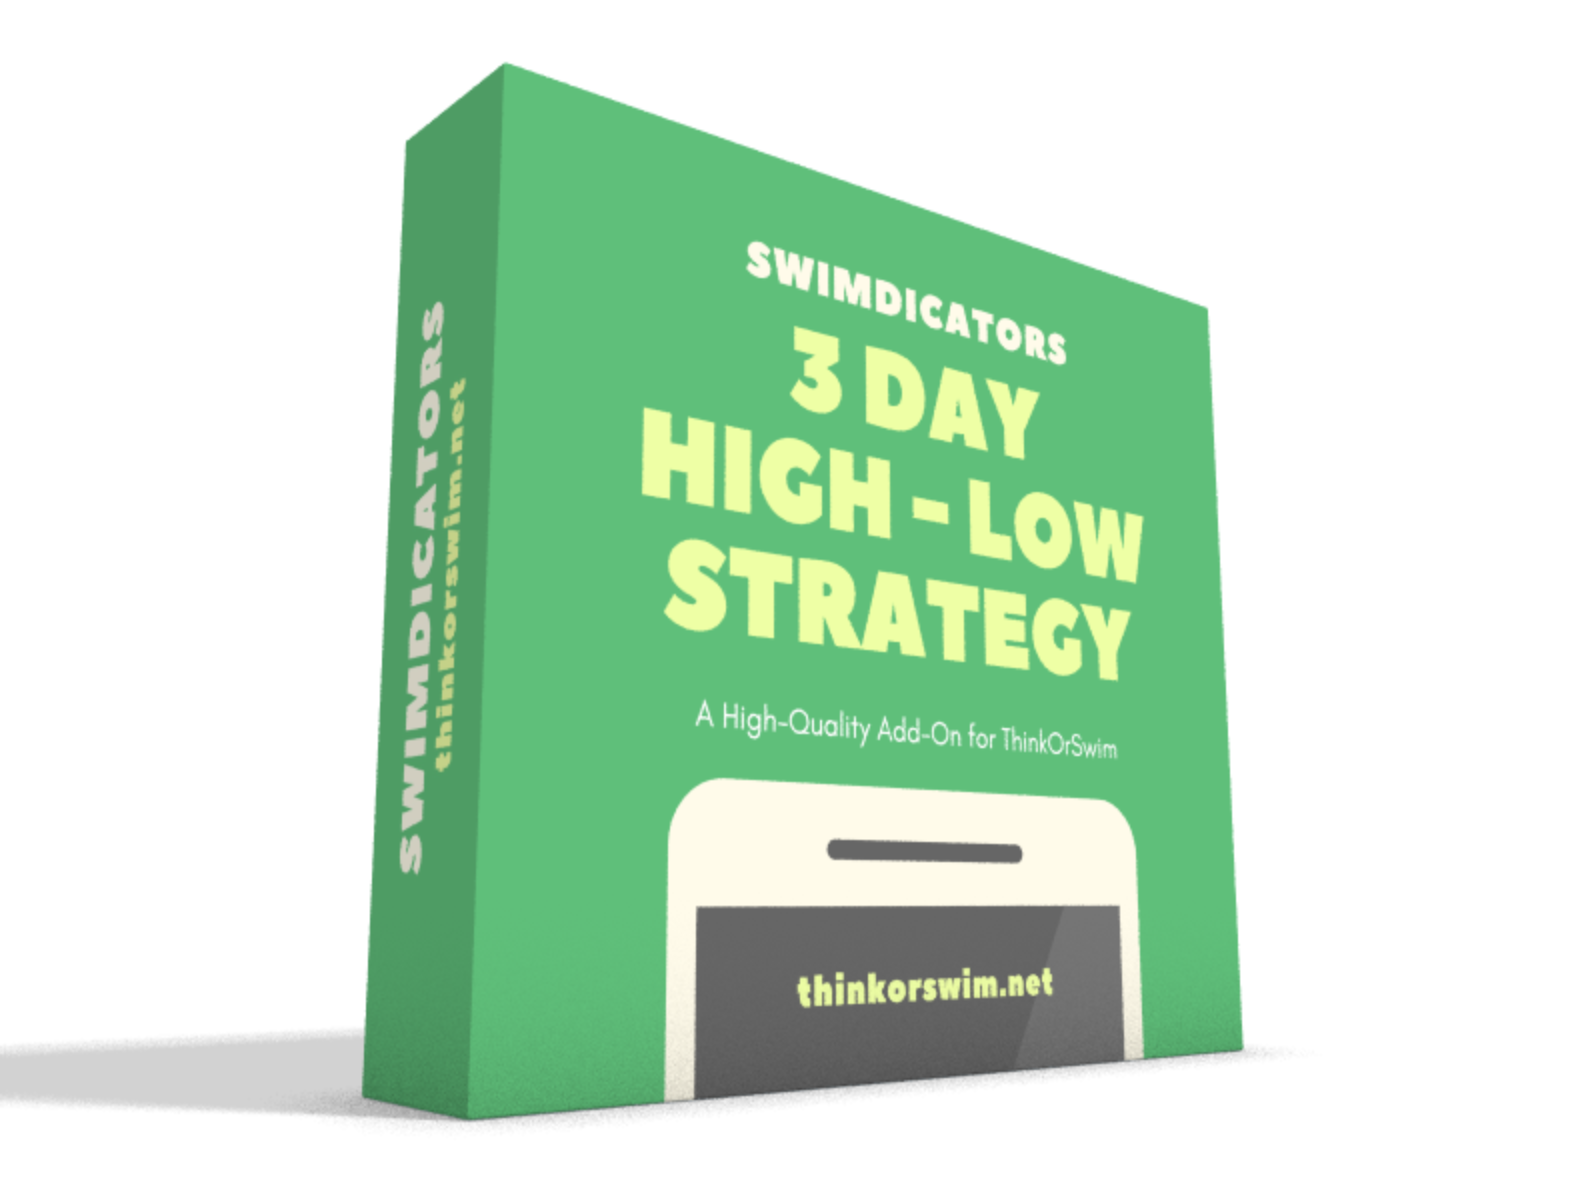 52 week high trading strategies